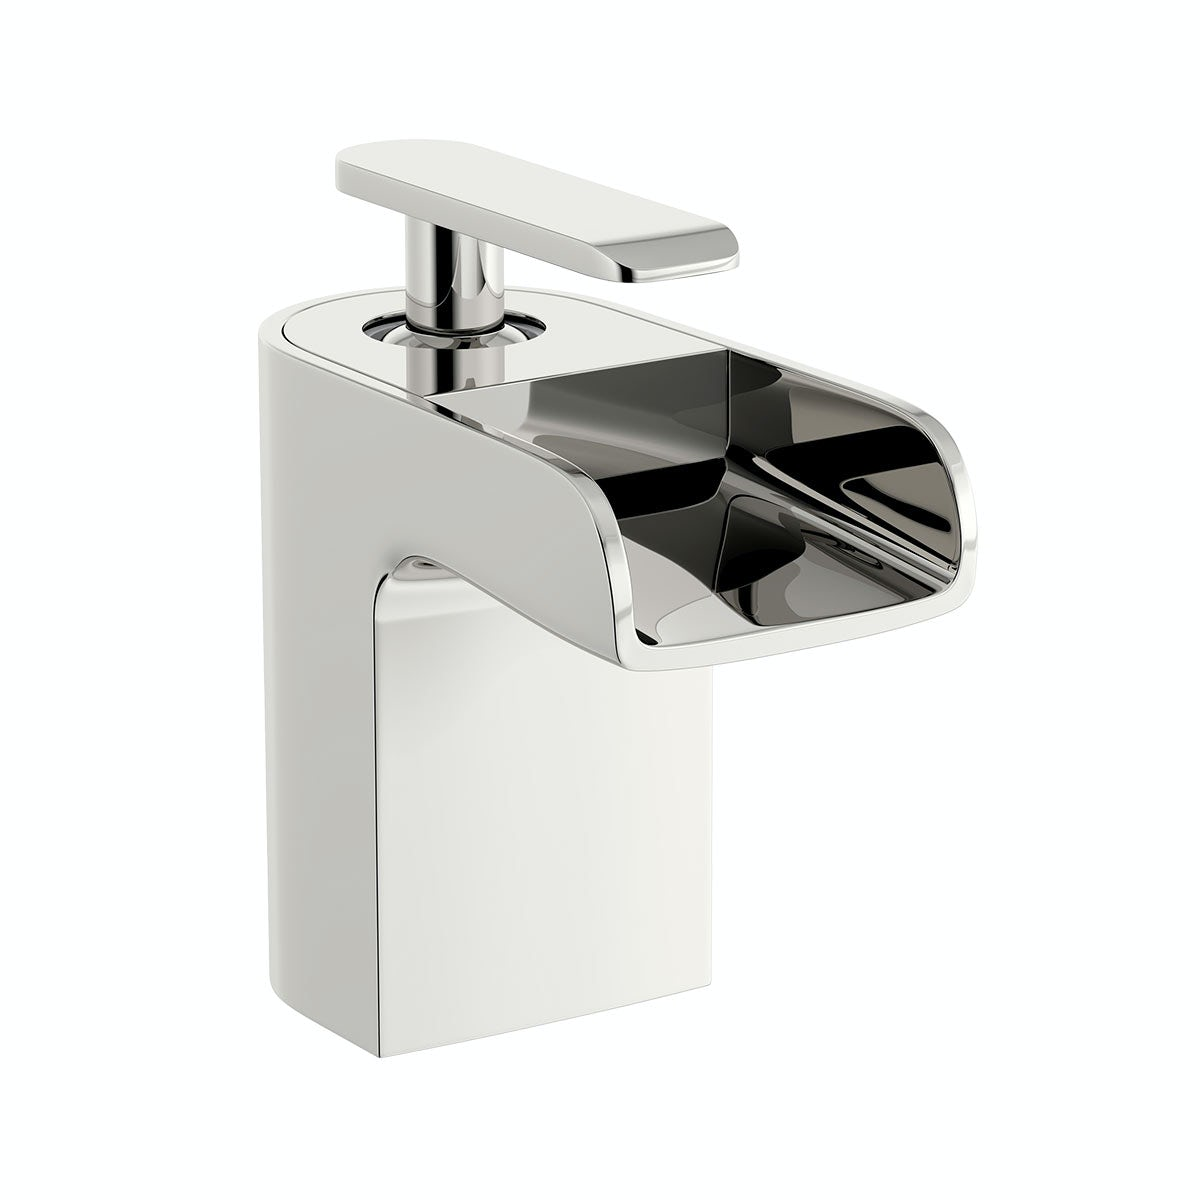 Mode reinosa basin and bath mixer tap pack for Waterfall delivery